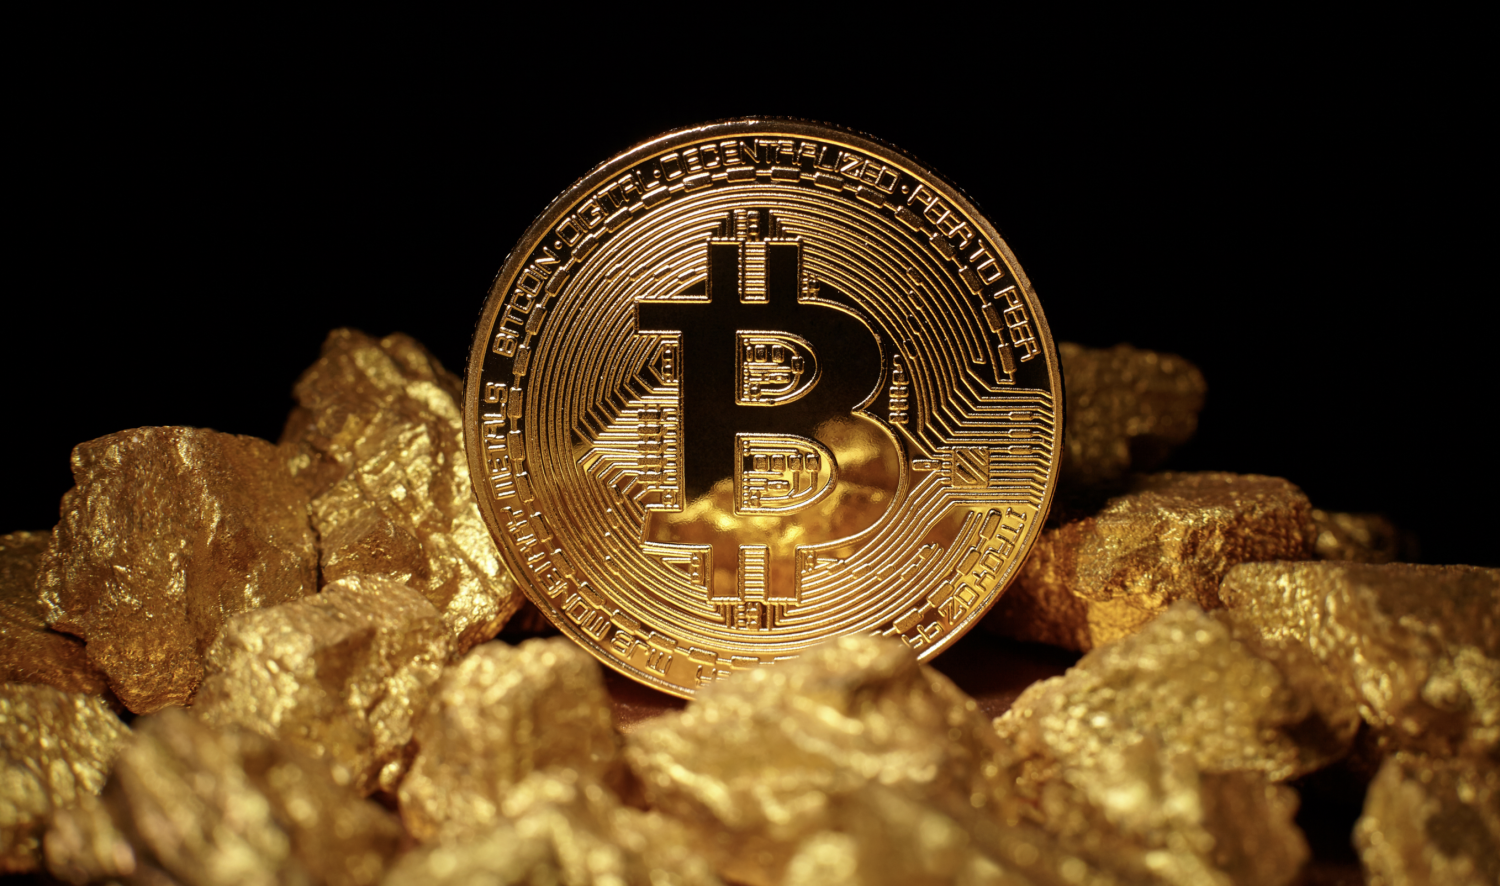 Bitcoin falls again after a new attempt